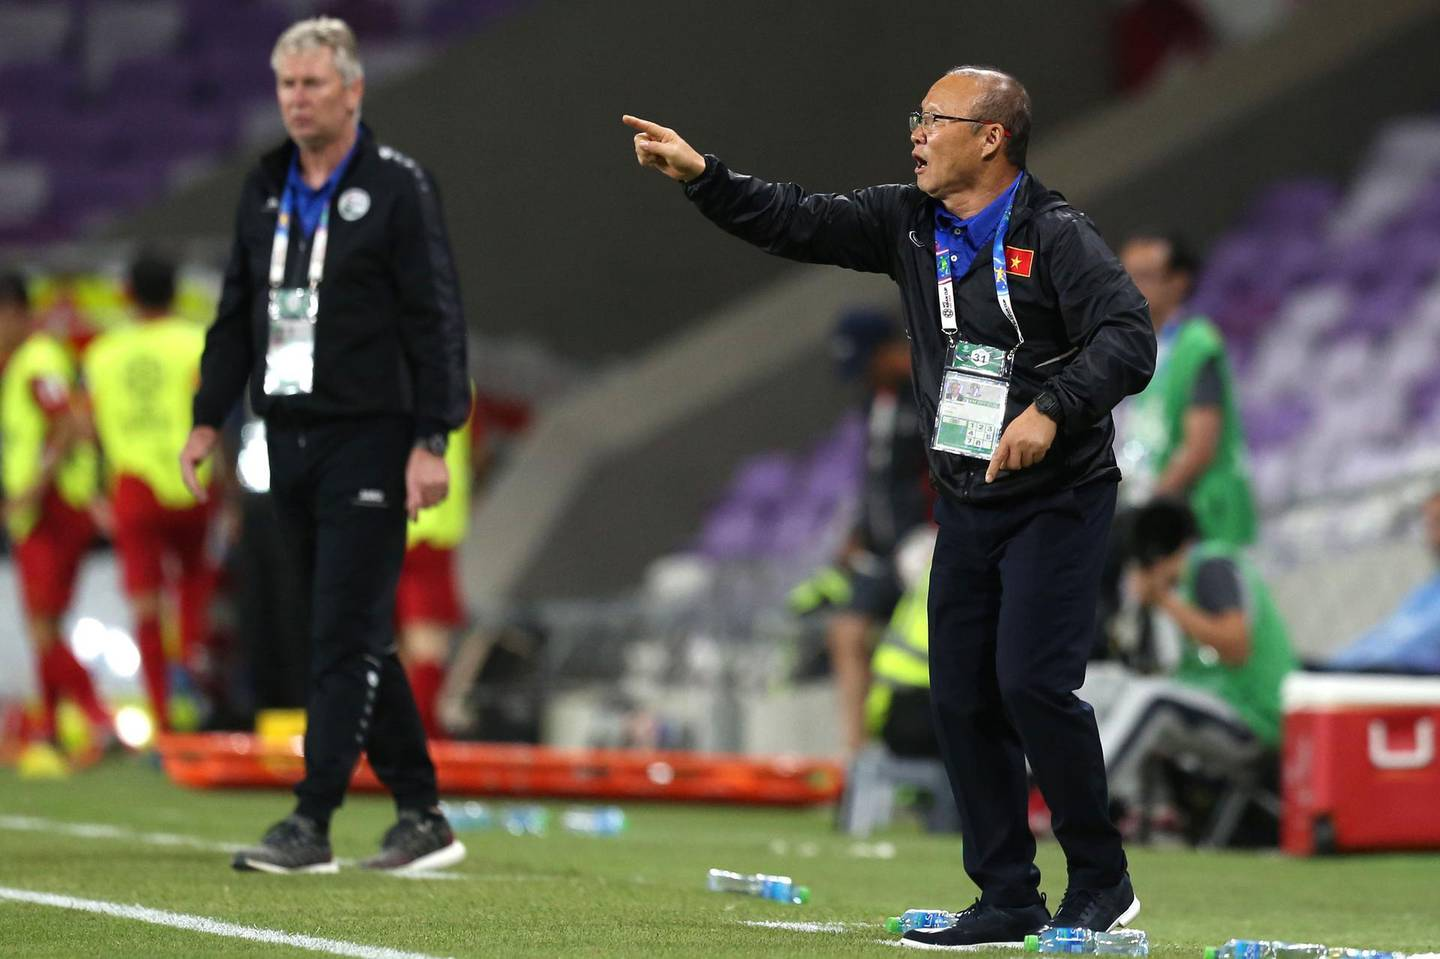 Vietnam's coach Hang-Seo Park (R) gives his instructions during the 2019 AFC Asian Cup group D football match between Vietnam and Yemen at the Hazza Bin Zayed Stadium in Al-Ain on January 16, 2019.  / AFP / -